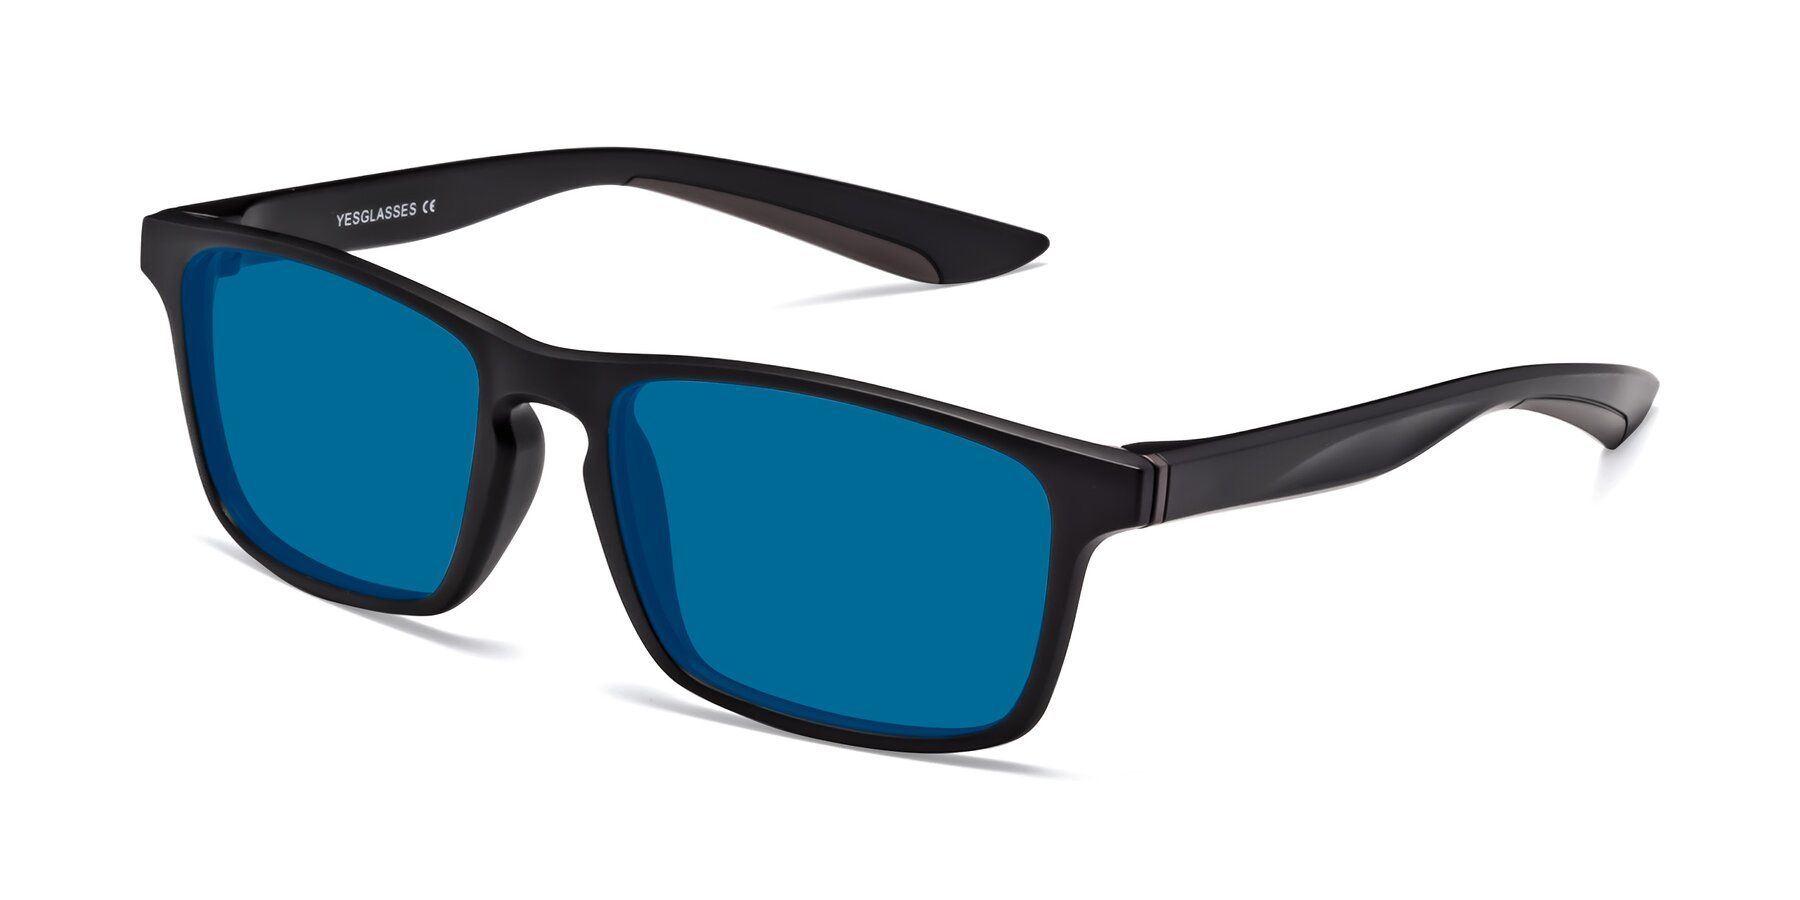 Angle of Passion in Matte Black-Coffee with Blue Tinted Lenses